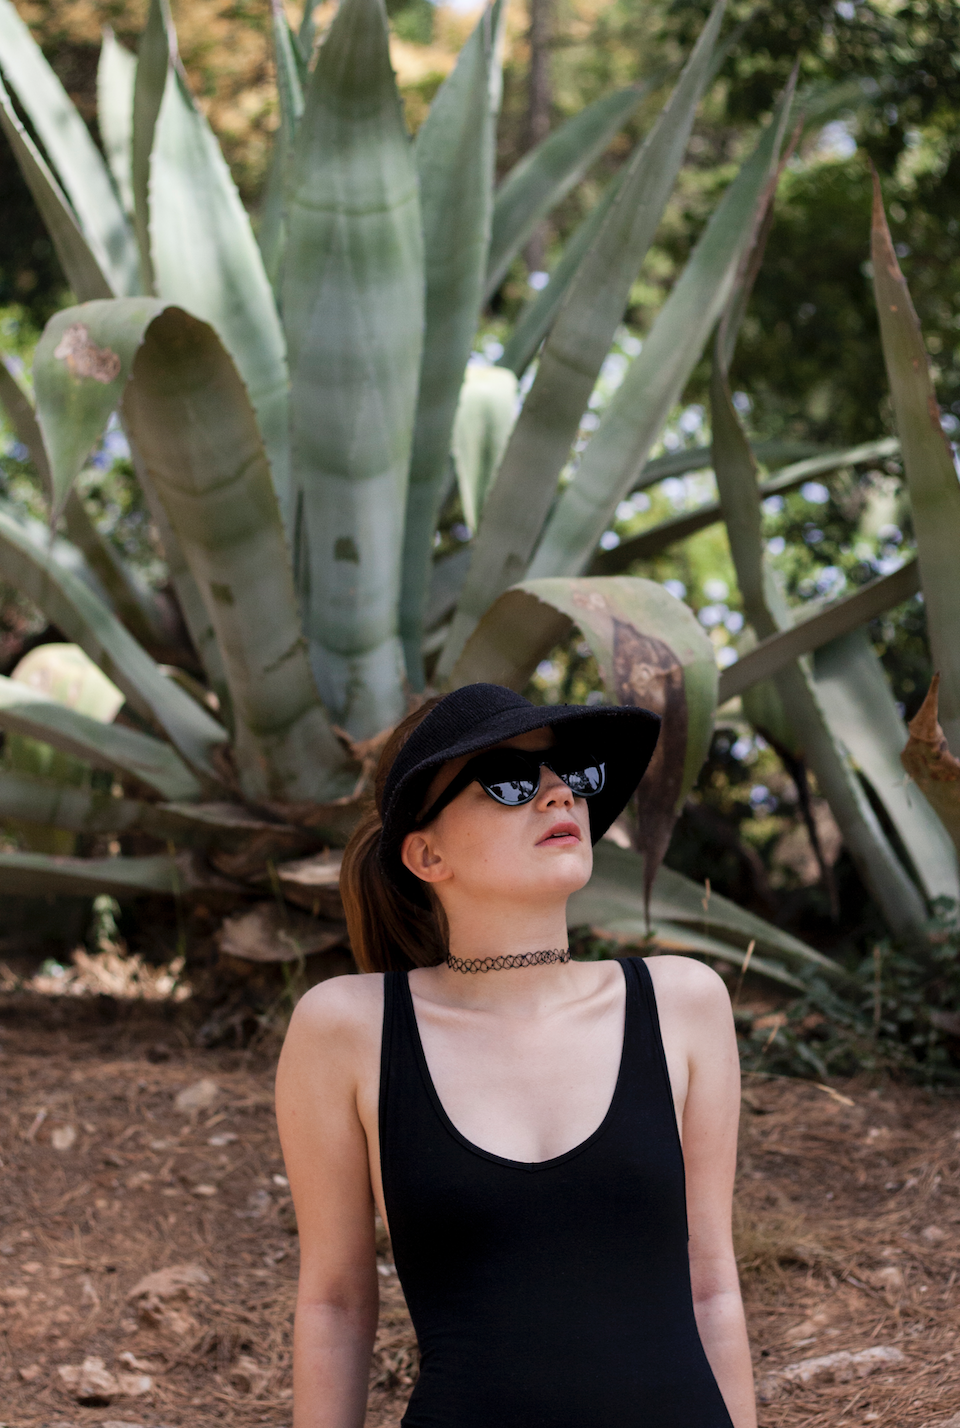 Barcelona, ootd, outfit, plants, Ace & Tate, sunglasses,